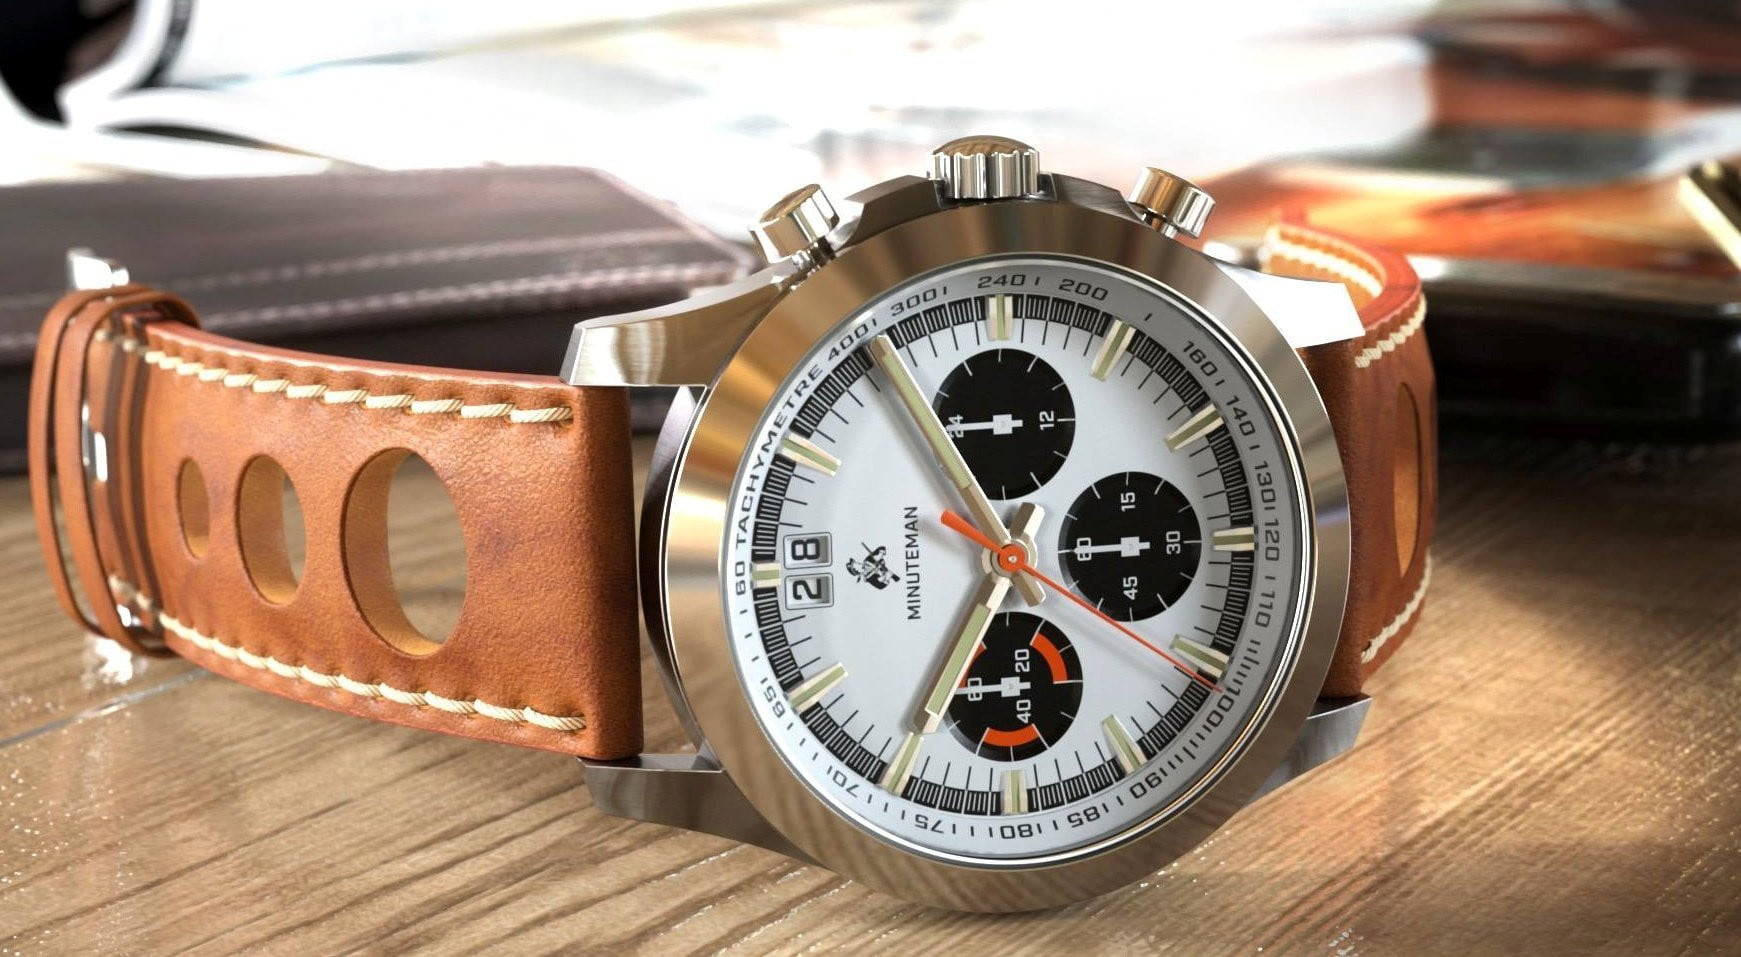 Minuteman Parker Chronograph Watch Brown Leather Strap Brushed Panda Dial (Pre Order) - minutemanwatches